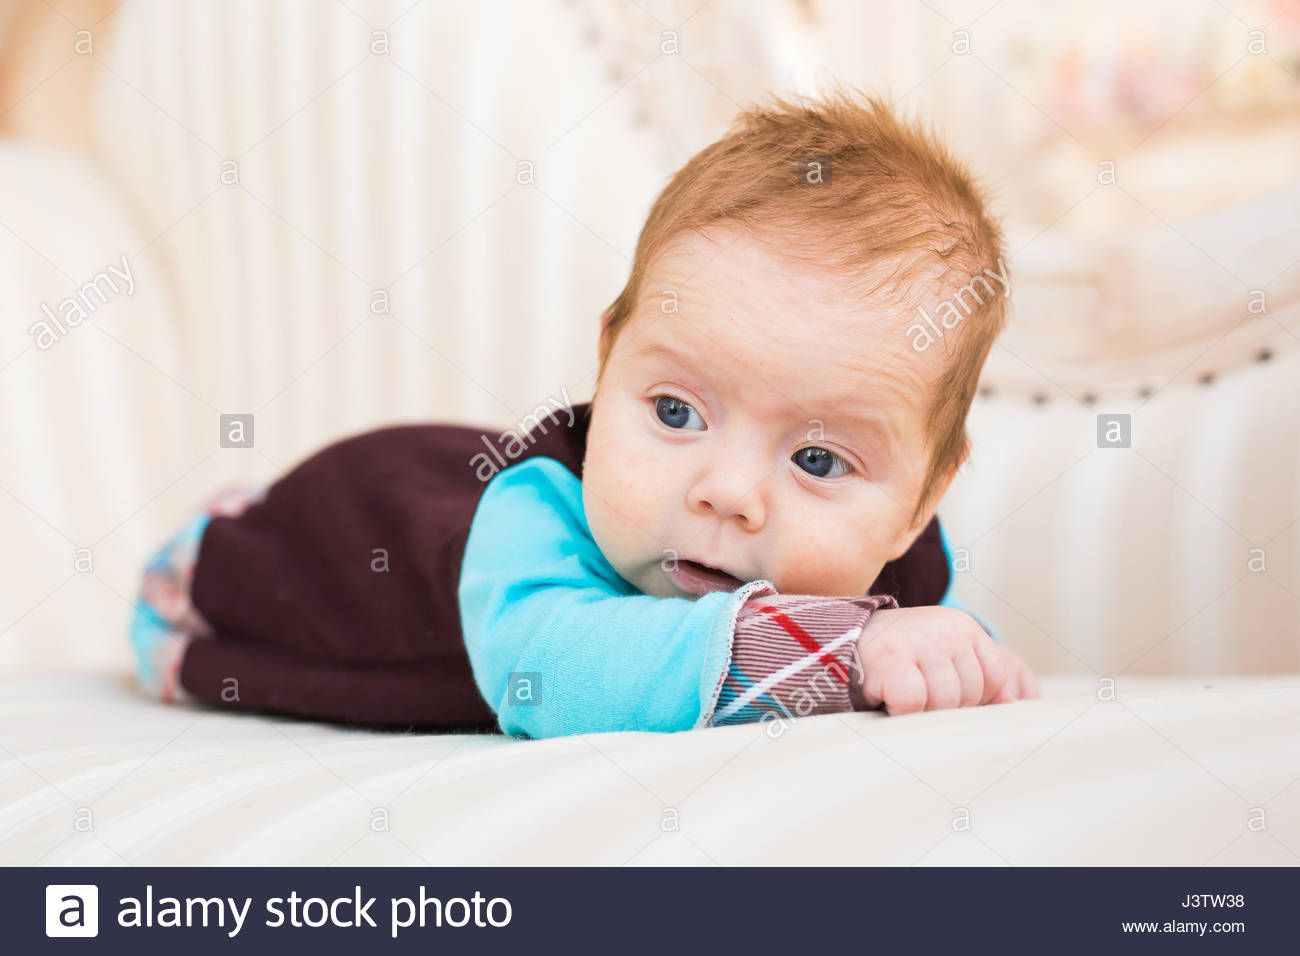 Image Result For What Babies With Red Hair Look Like Newborn Child Newborn Baby Boy